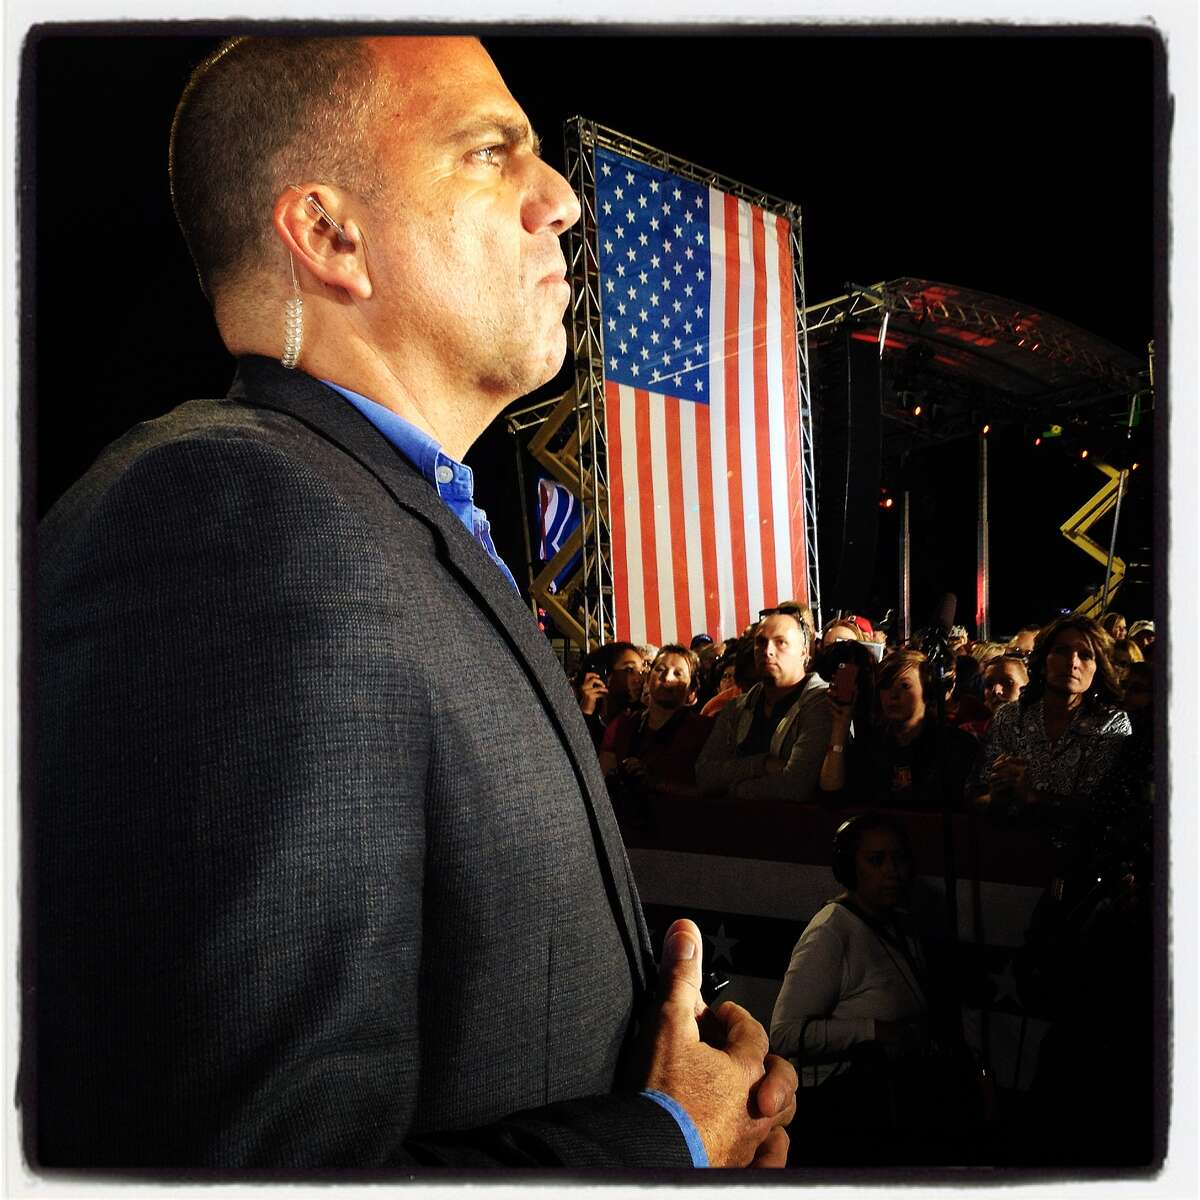 A Secret Service agent stands guard during a campaign speech by Republican presidential candidate, former Massachusetts Gov. Mitt Romney at Defiance High School October 25, 2012 in Defiance, Ohio. Mitt Romney is campaigning in Ohio with less than two weeks to go before the election.